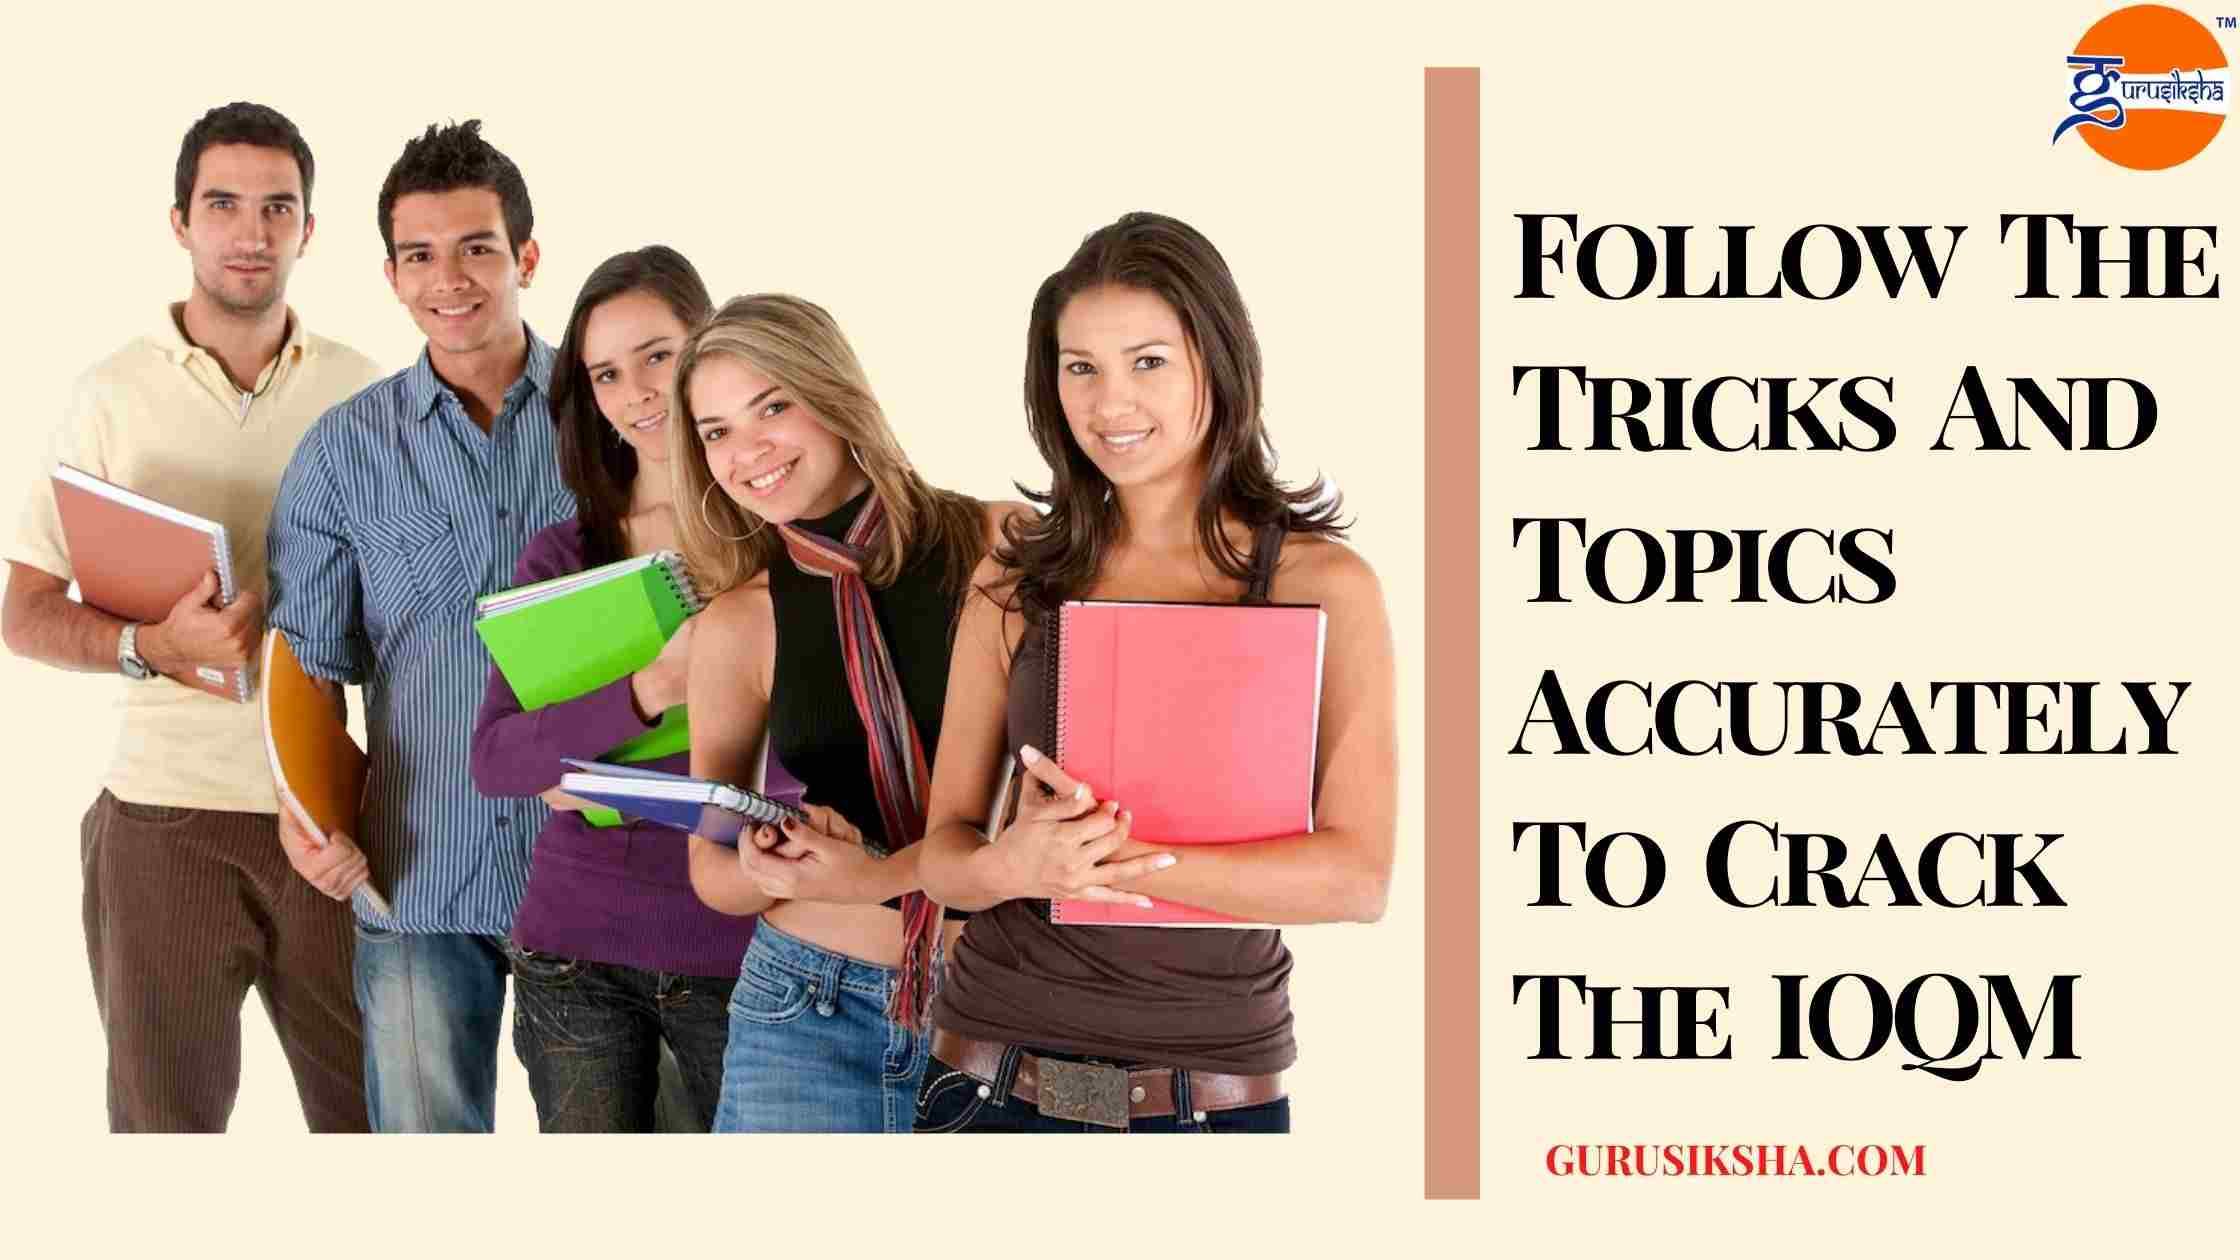 Tips & Topics to Crack IOQM Exam With The Help Of Tuition Classes